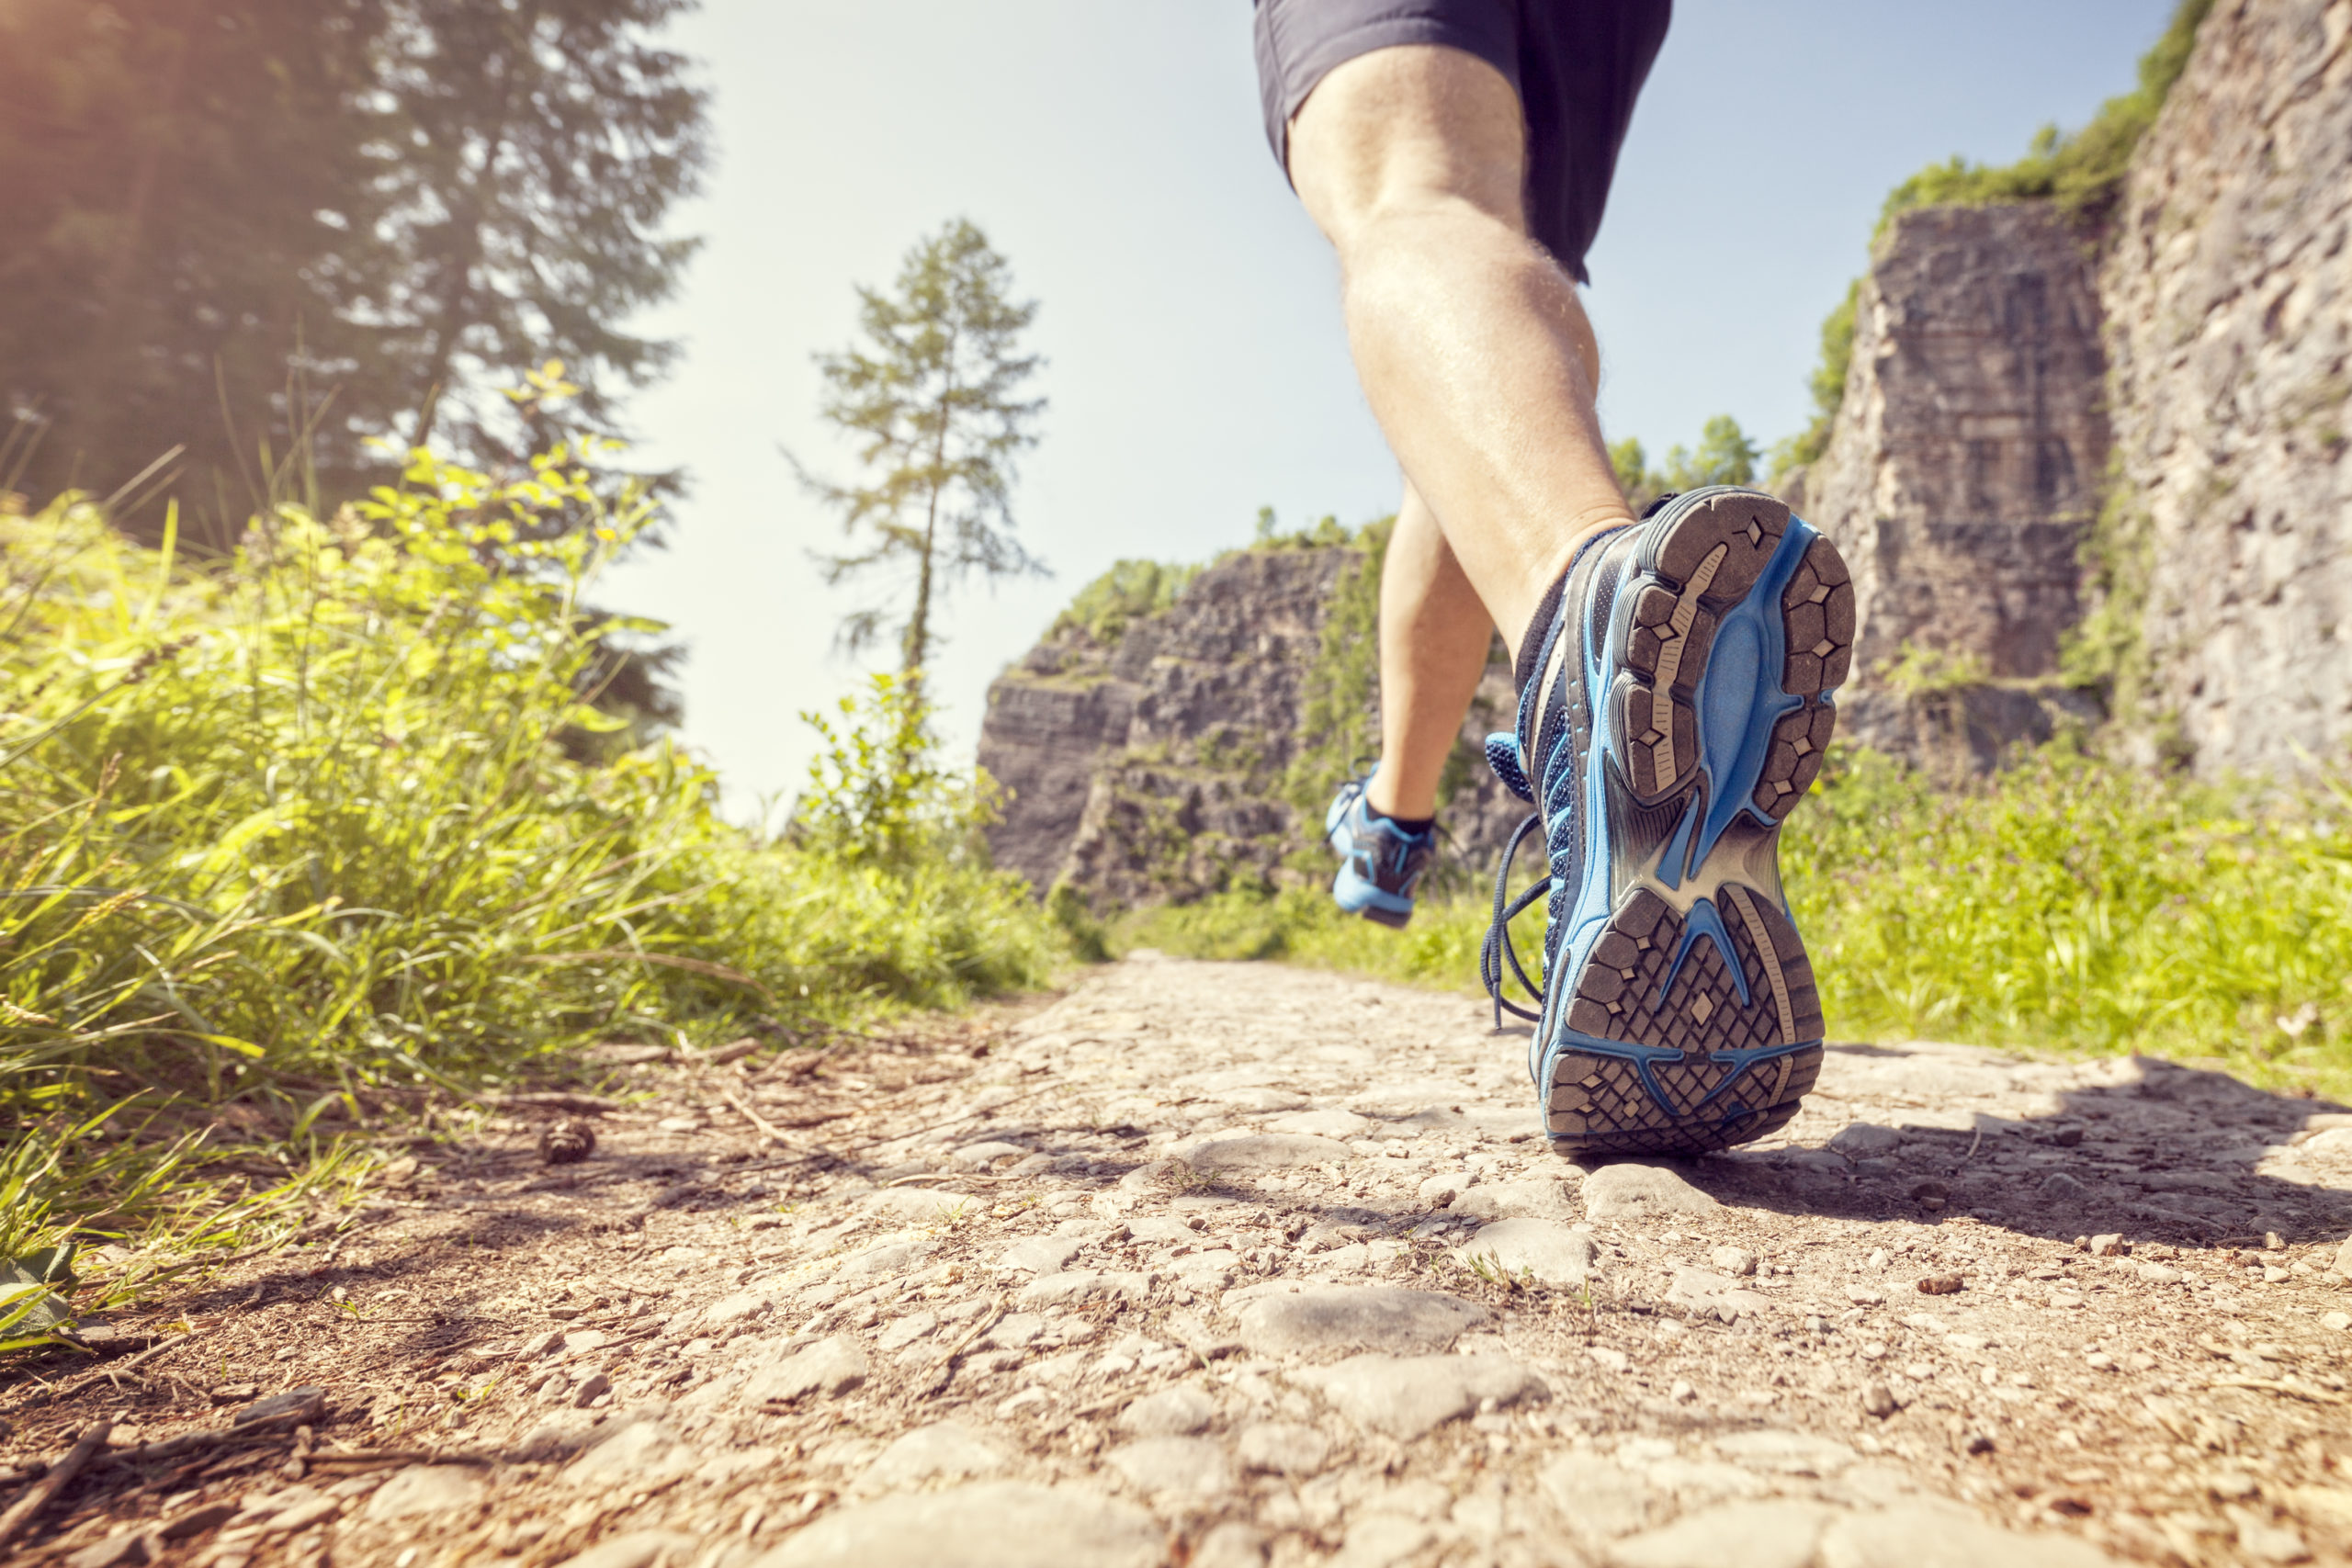 How to live healthy with Best Outdoor Activities and Leisure Sports